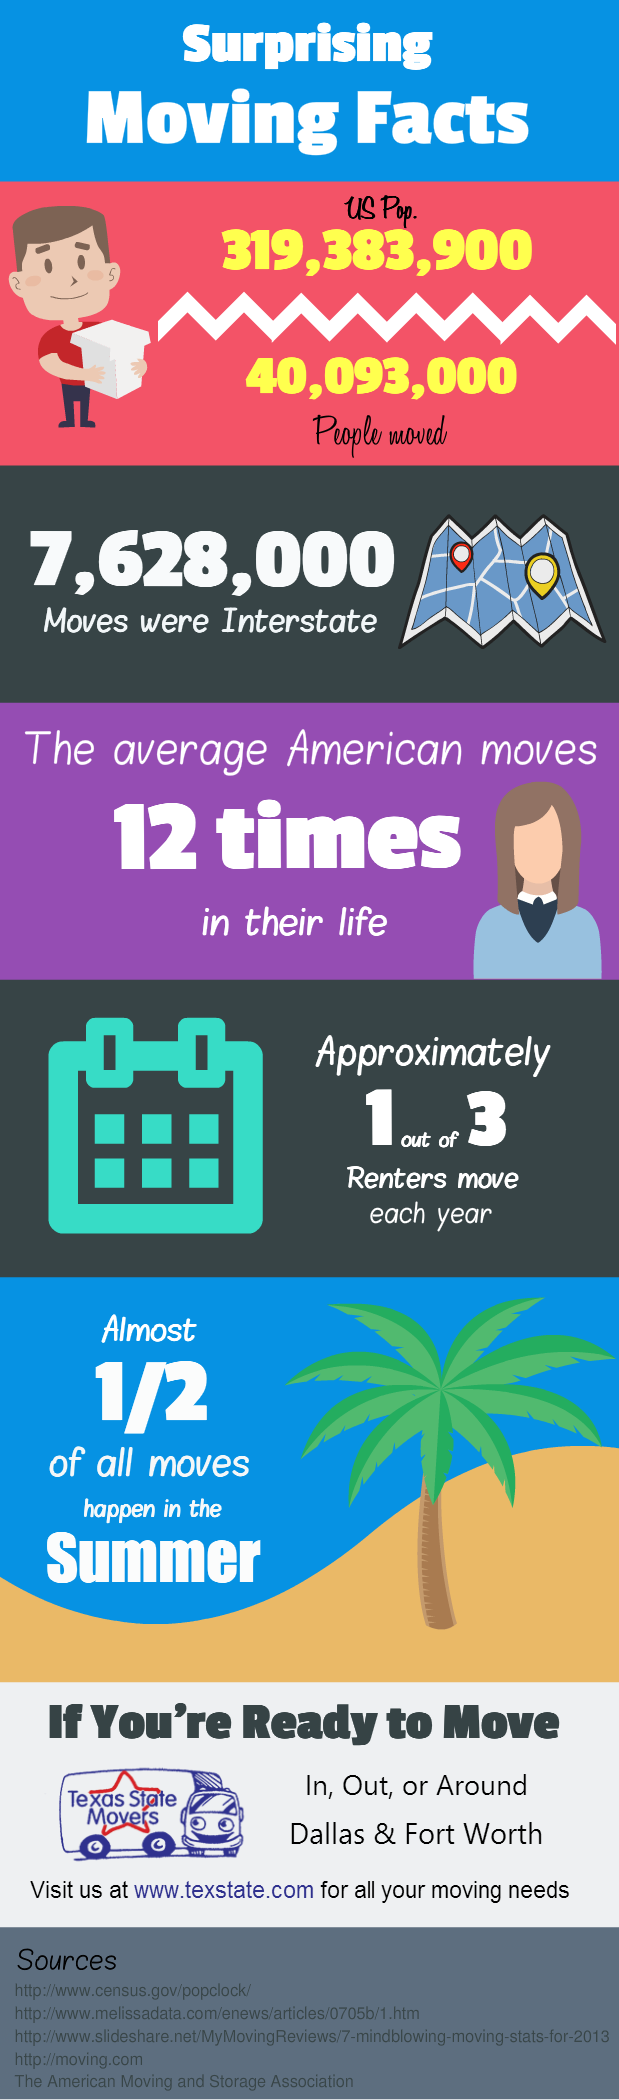 Dallas Movers & Fort Worth Movers Infographic